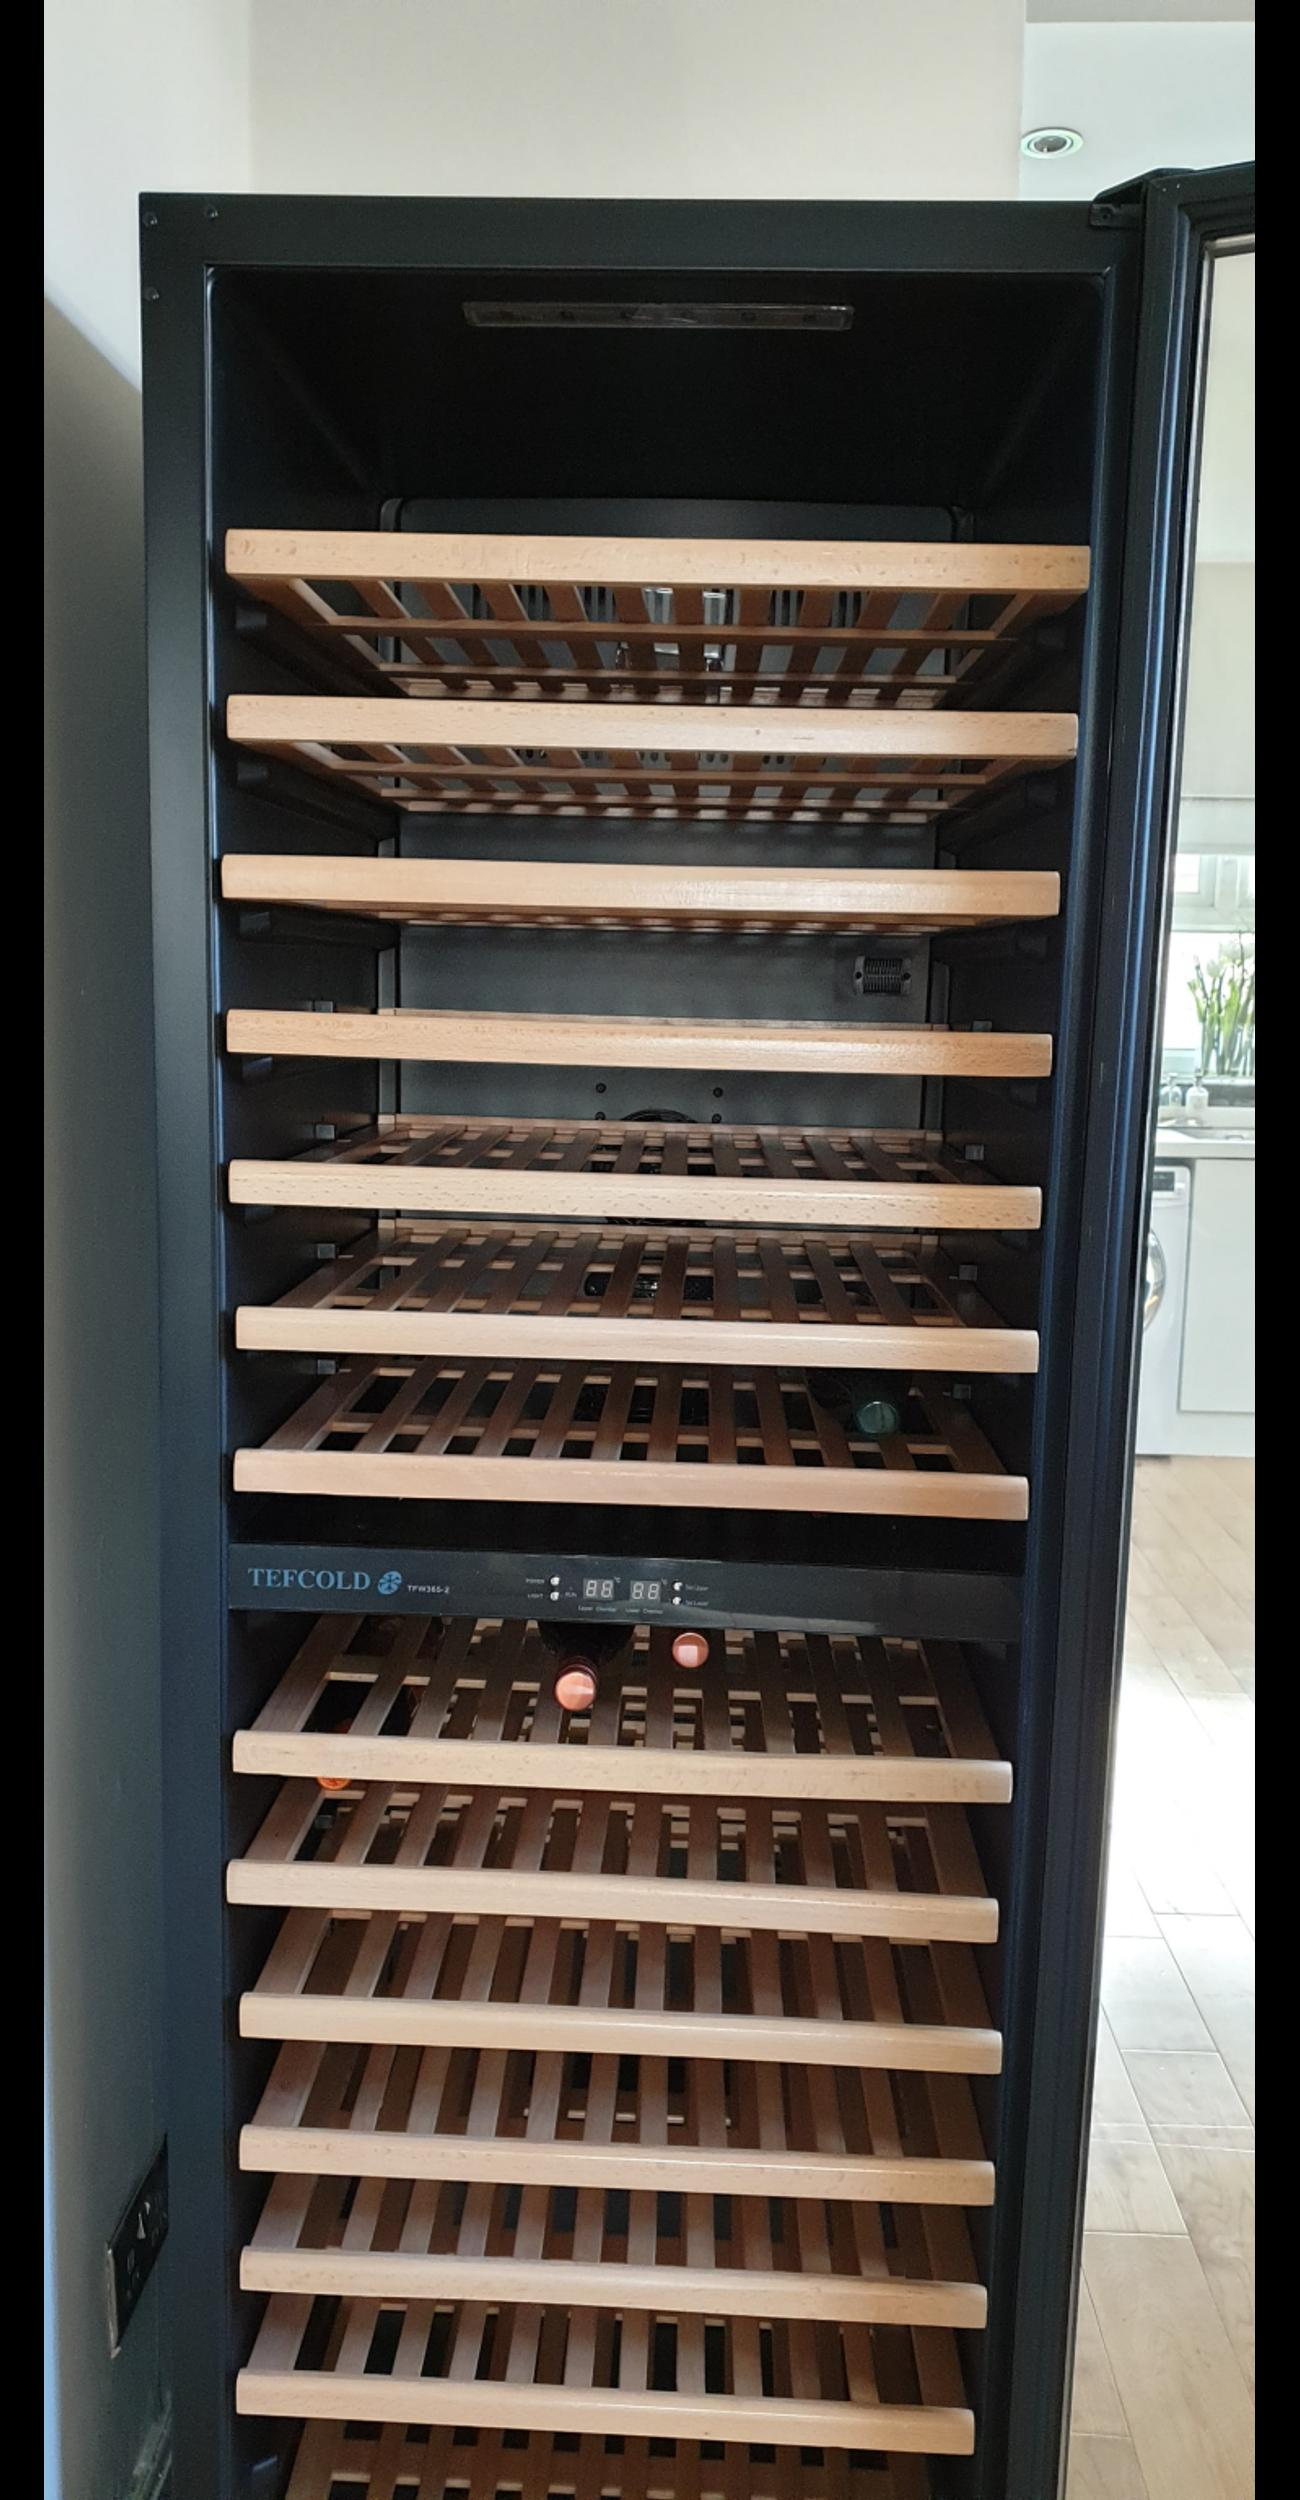 A dual temperature wine cooler. Designed so you can store and display white and red wine at the correct temperature with white wine in the top (up to 77 bottles) and red wine in the bottom (up to 77 bottles). Slide out wooden shelves allow easy selection of wine and LED lights helps to keep energy bills down